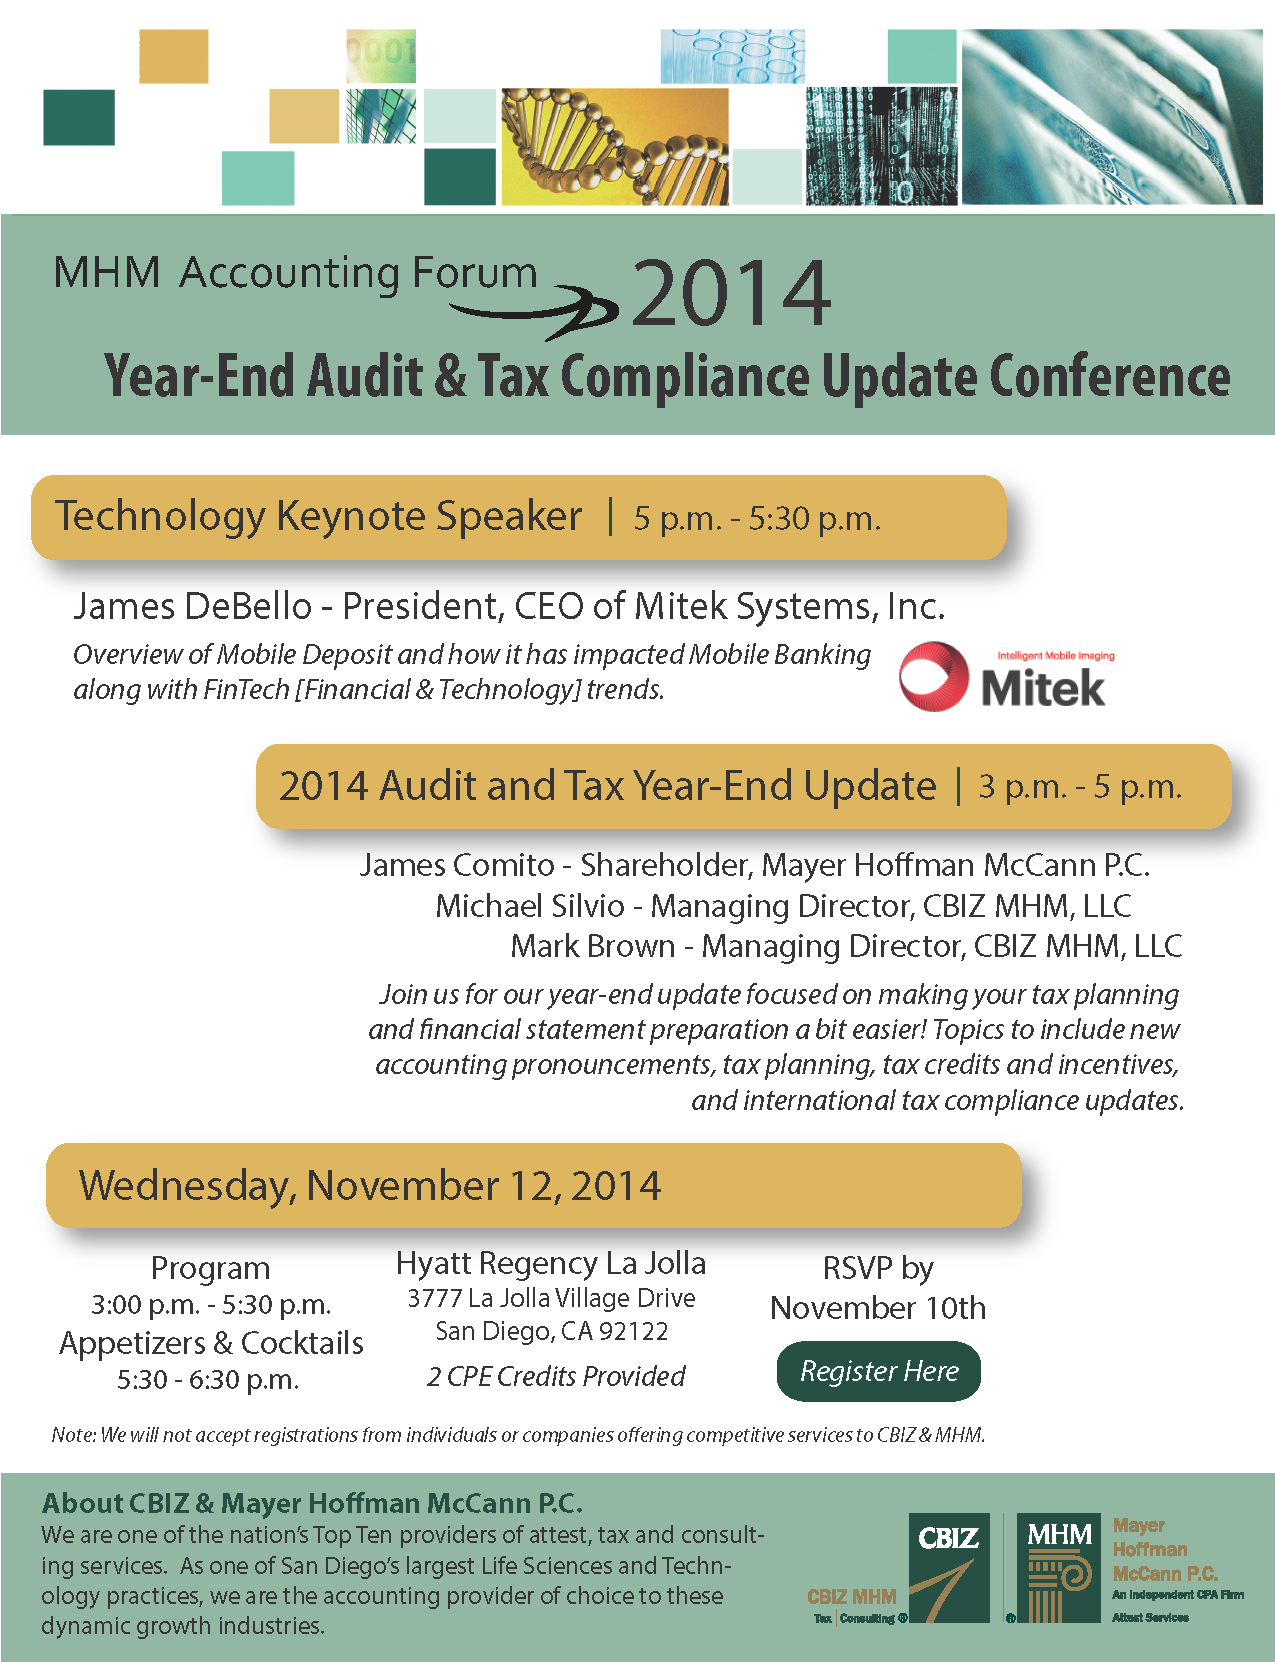 CBIZ MHM Year-End Audit & Tax Update Conference